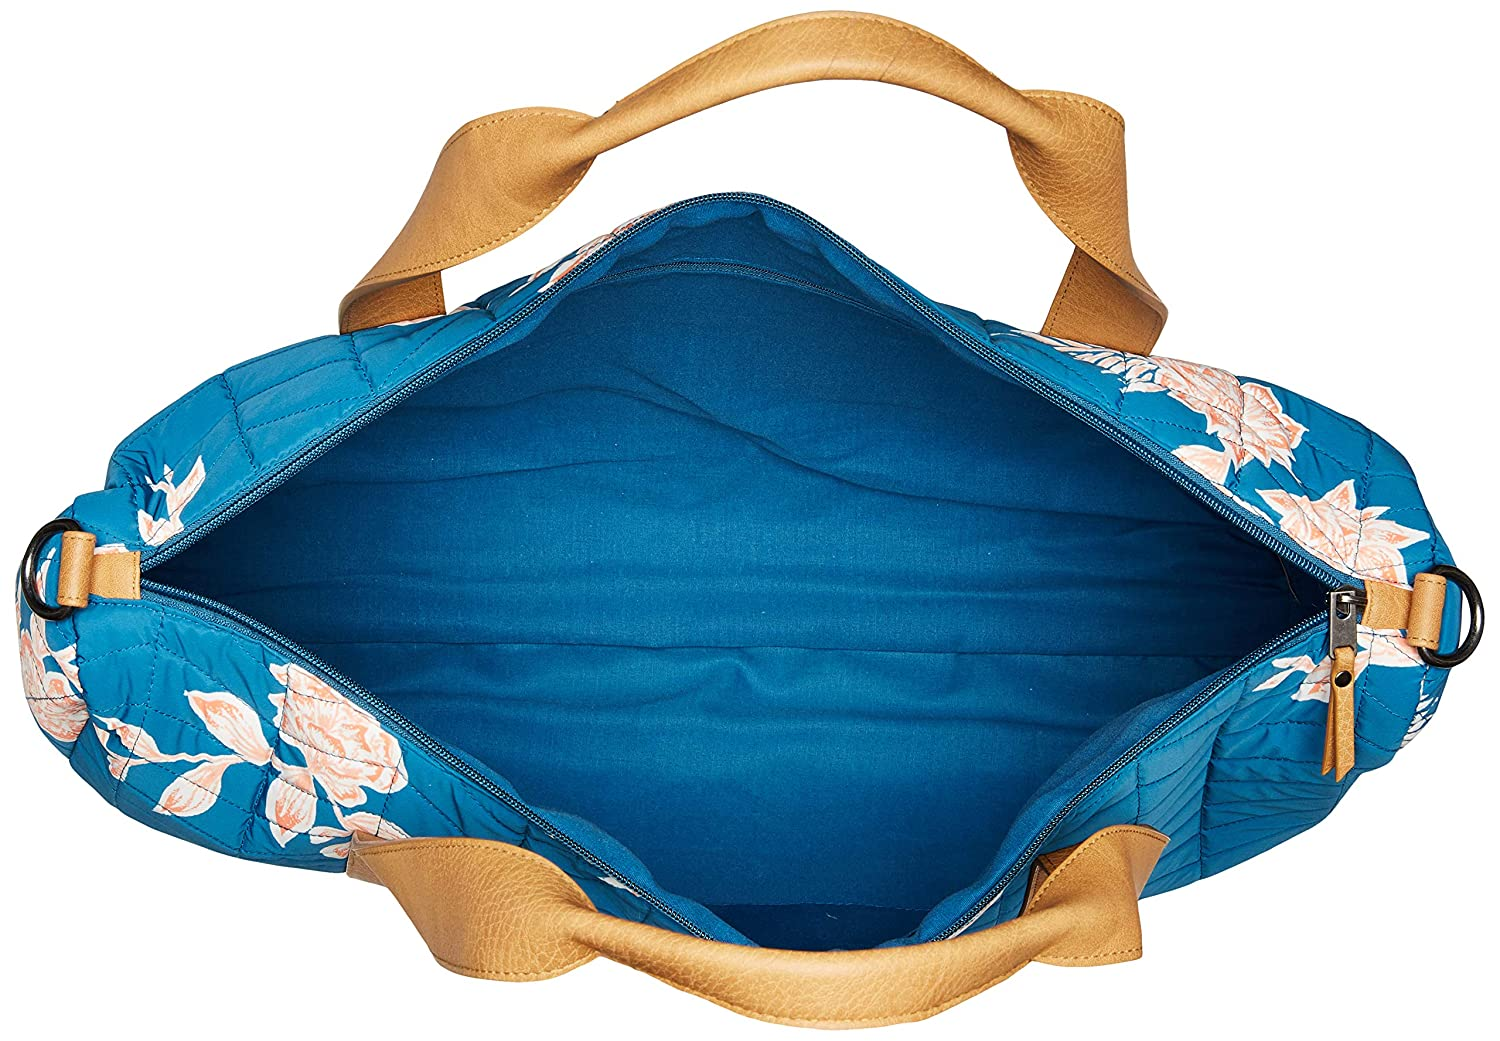 Roxy Richly Colored Duffle Bag